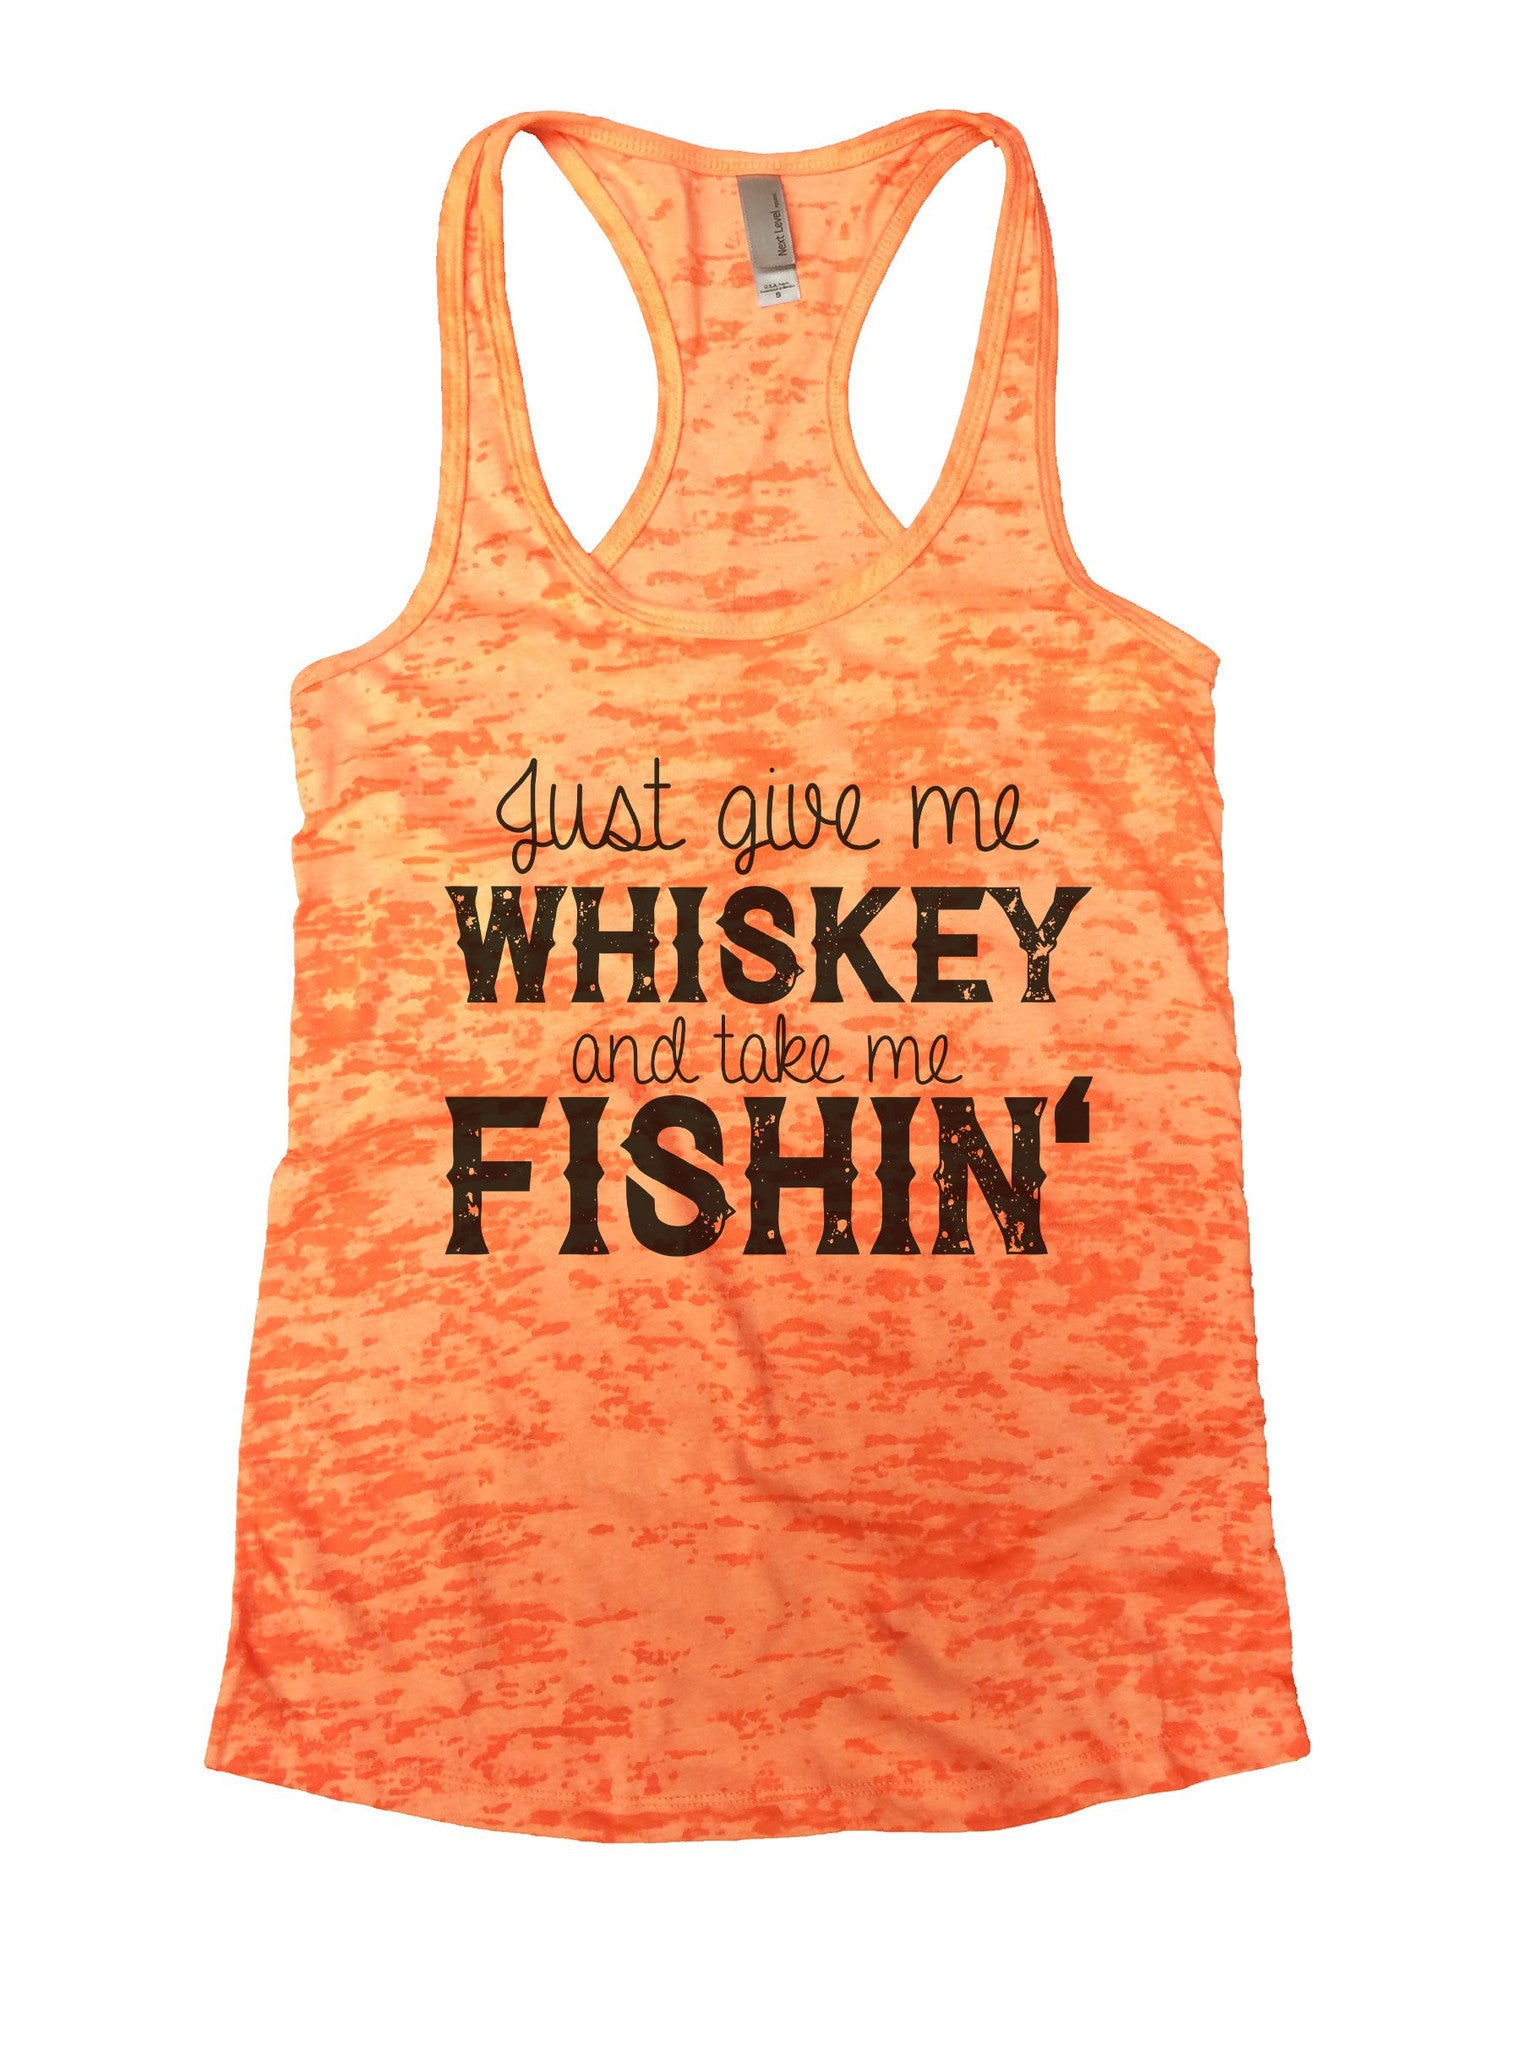 Just Give Me Whiskey And Take Me Fishin Burnout Tank Top By BurnoutTankTops.com - 1012 - Funny Shirts Tank Tops Burnouts and Triblends  - 3